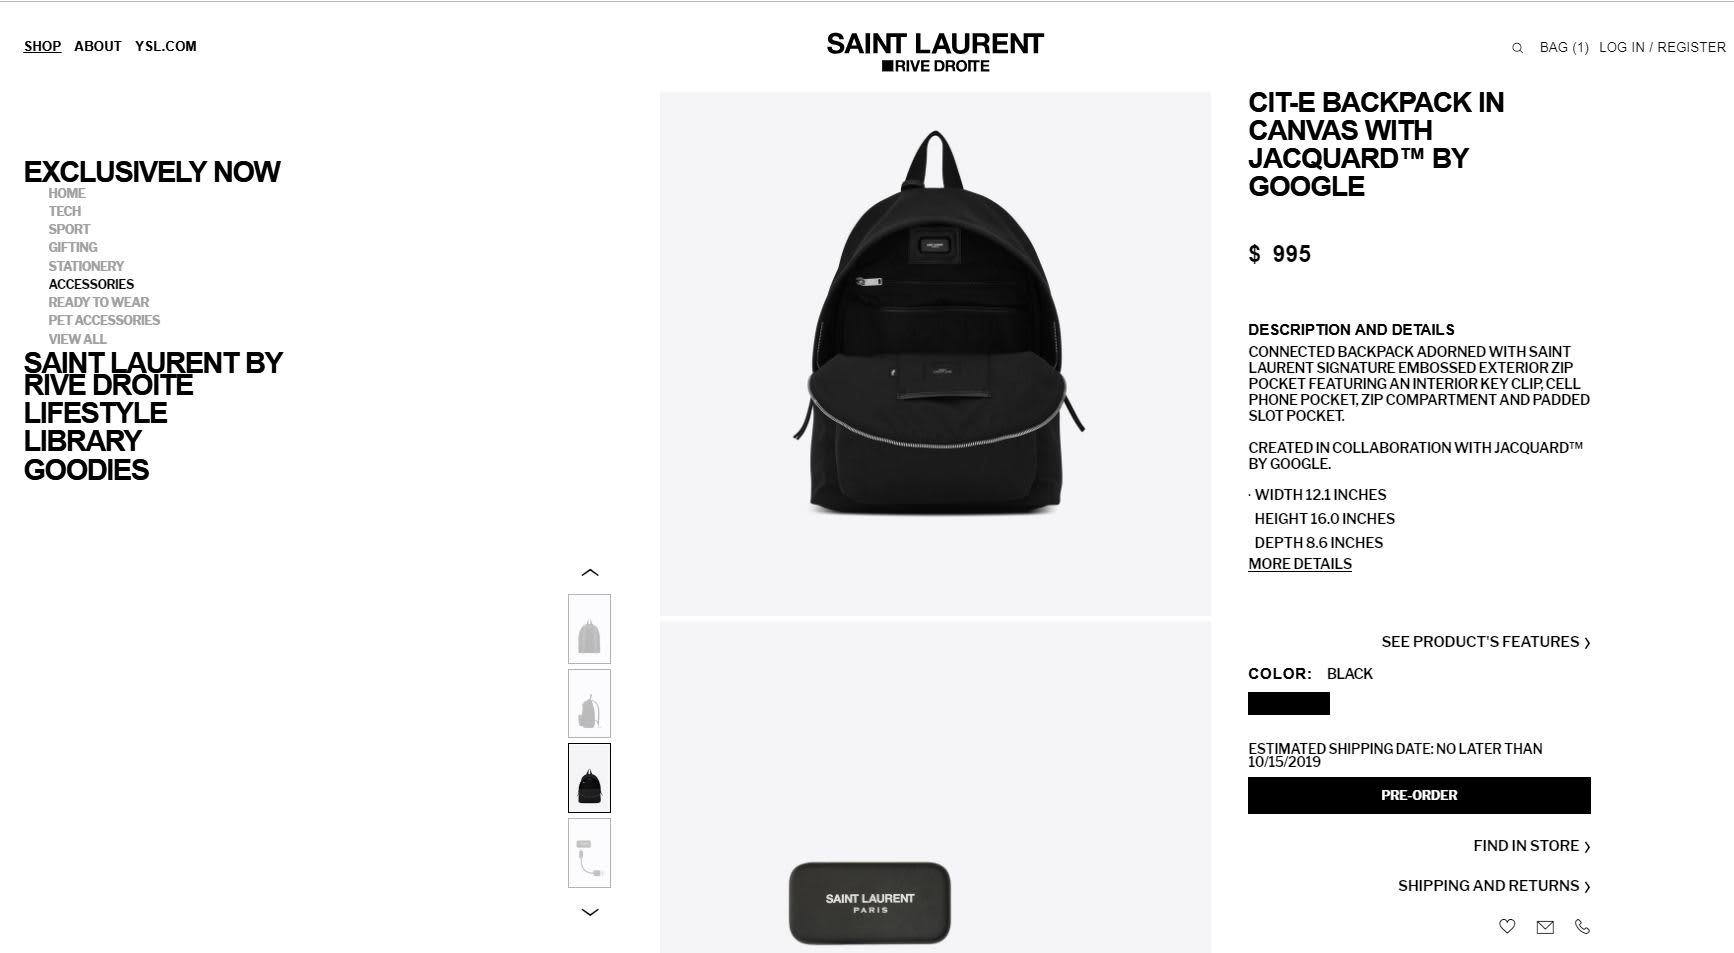 Take a look at the $995 smart backpack from Google and Yves Saint Laurent